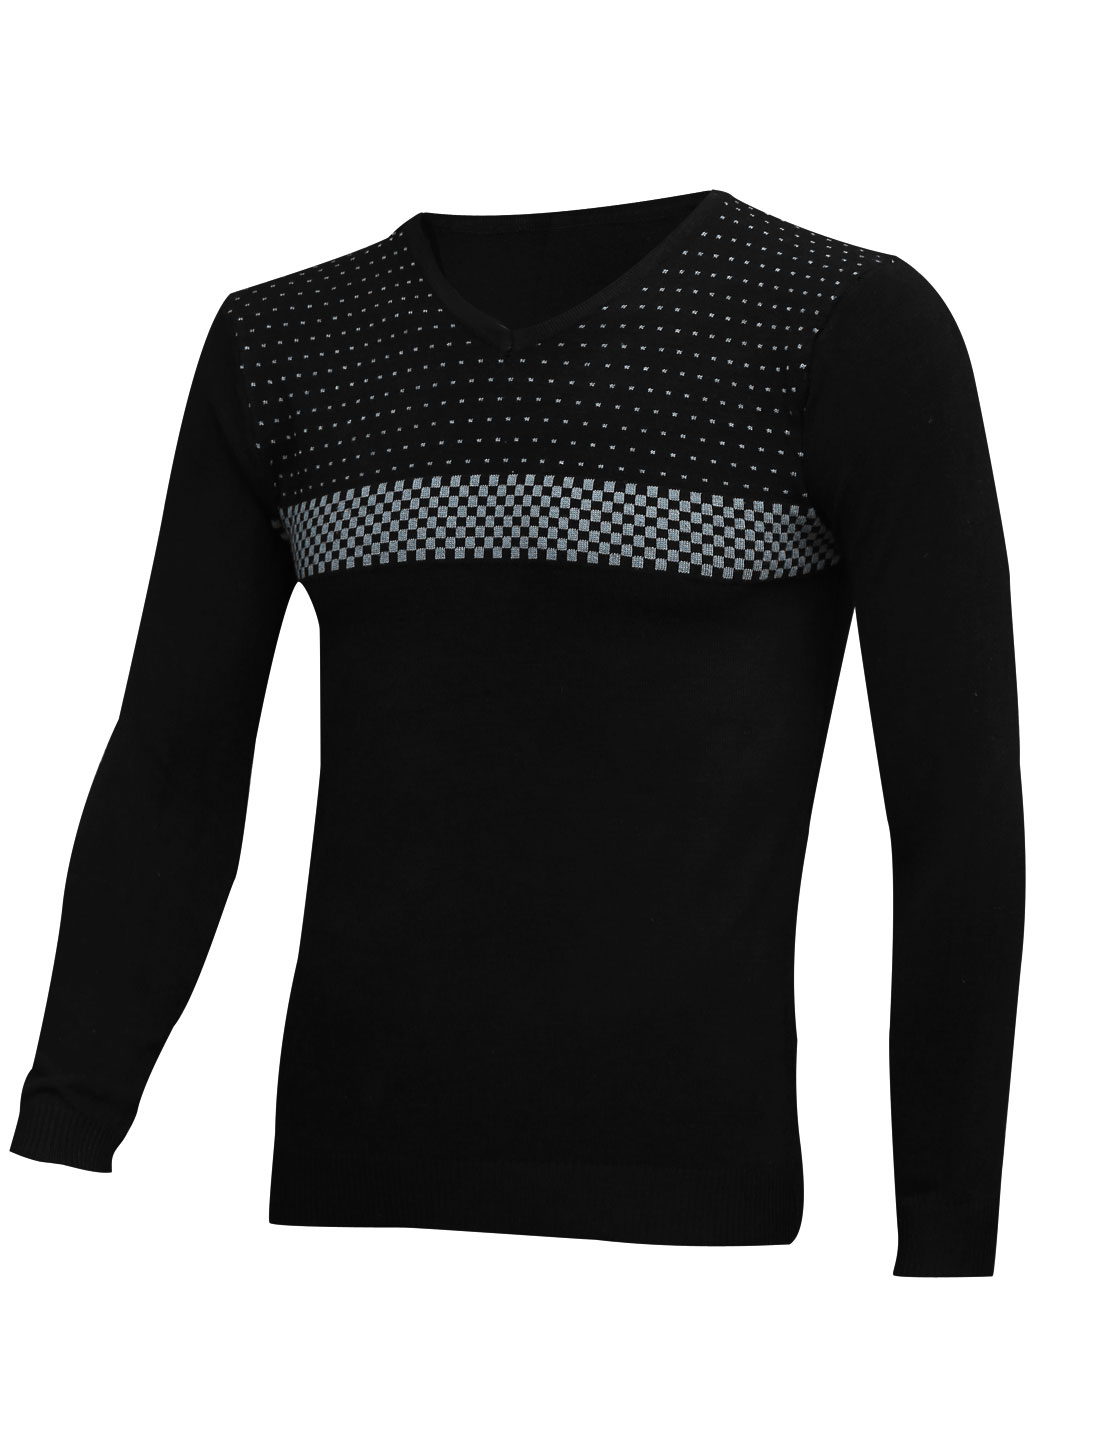 Men V Neck Long Sleeves Plaids Slim Fit Knit Shirt Black S